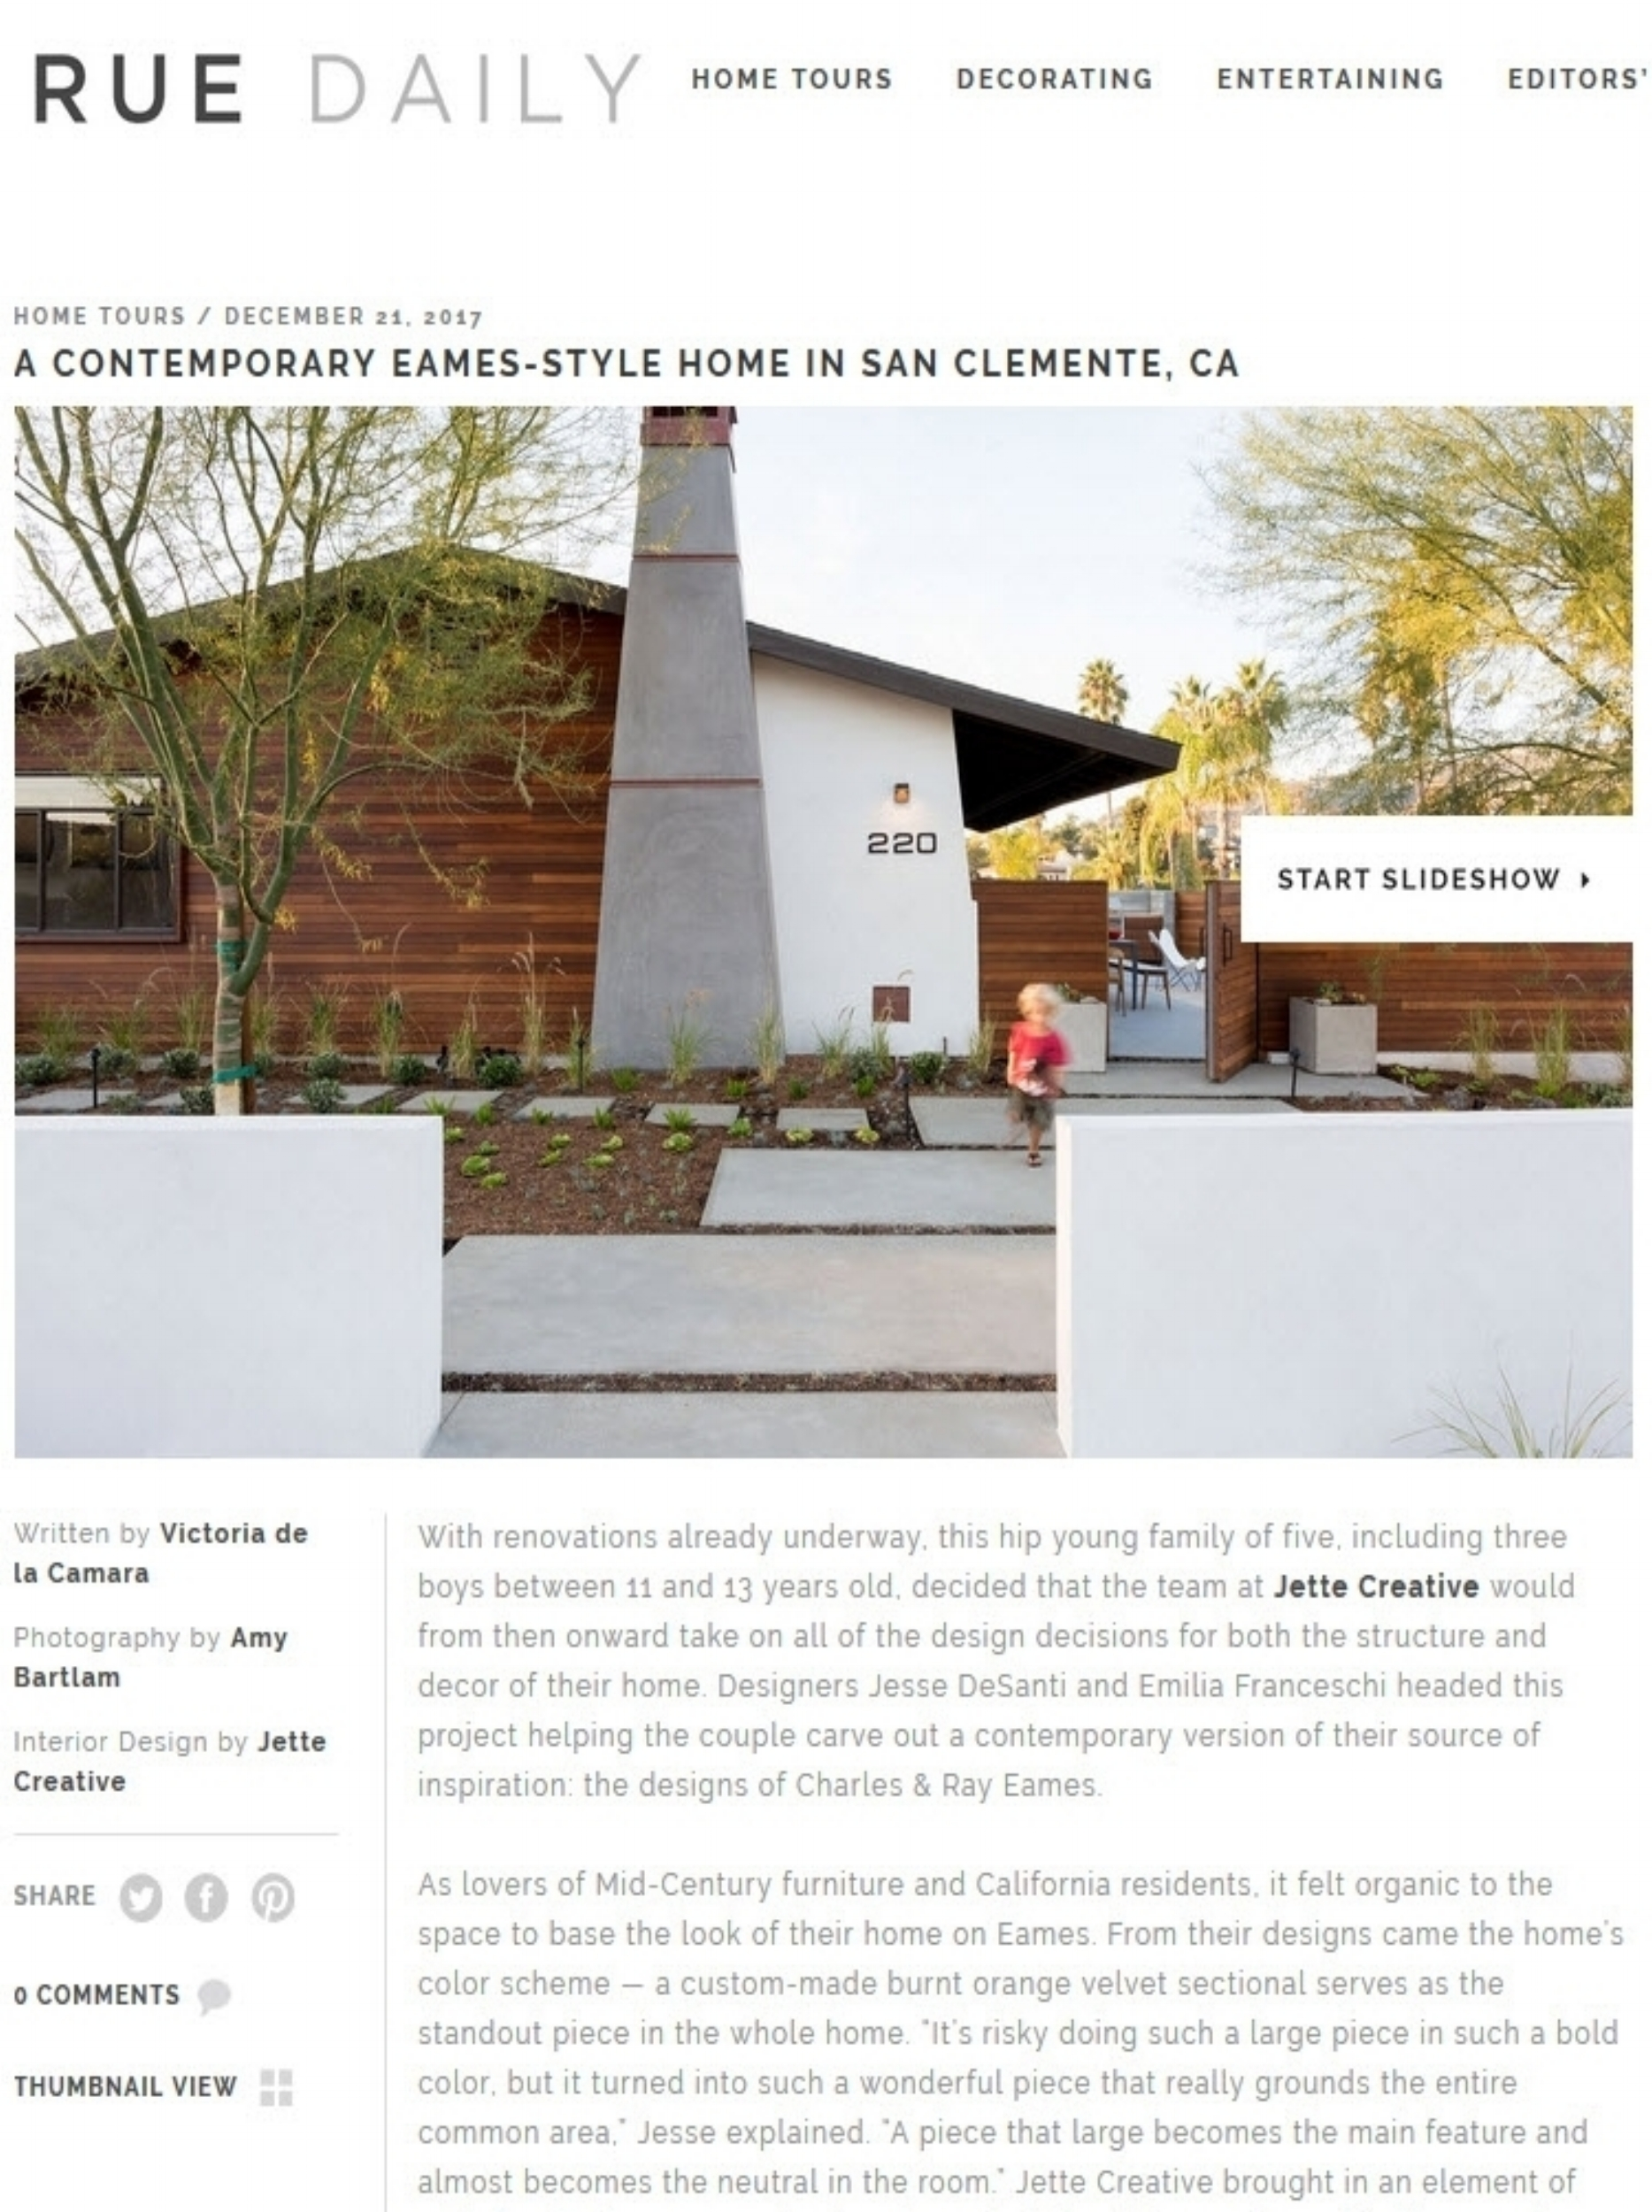 Rue Daily Feature. Link to publication imagery